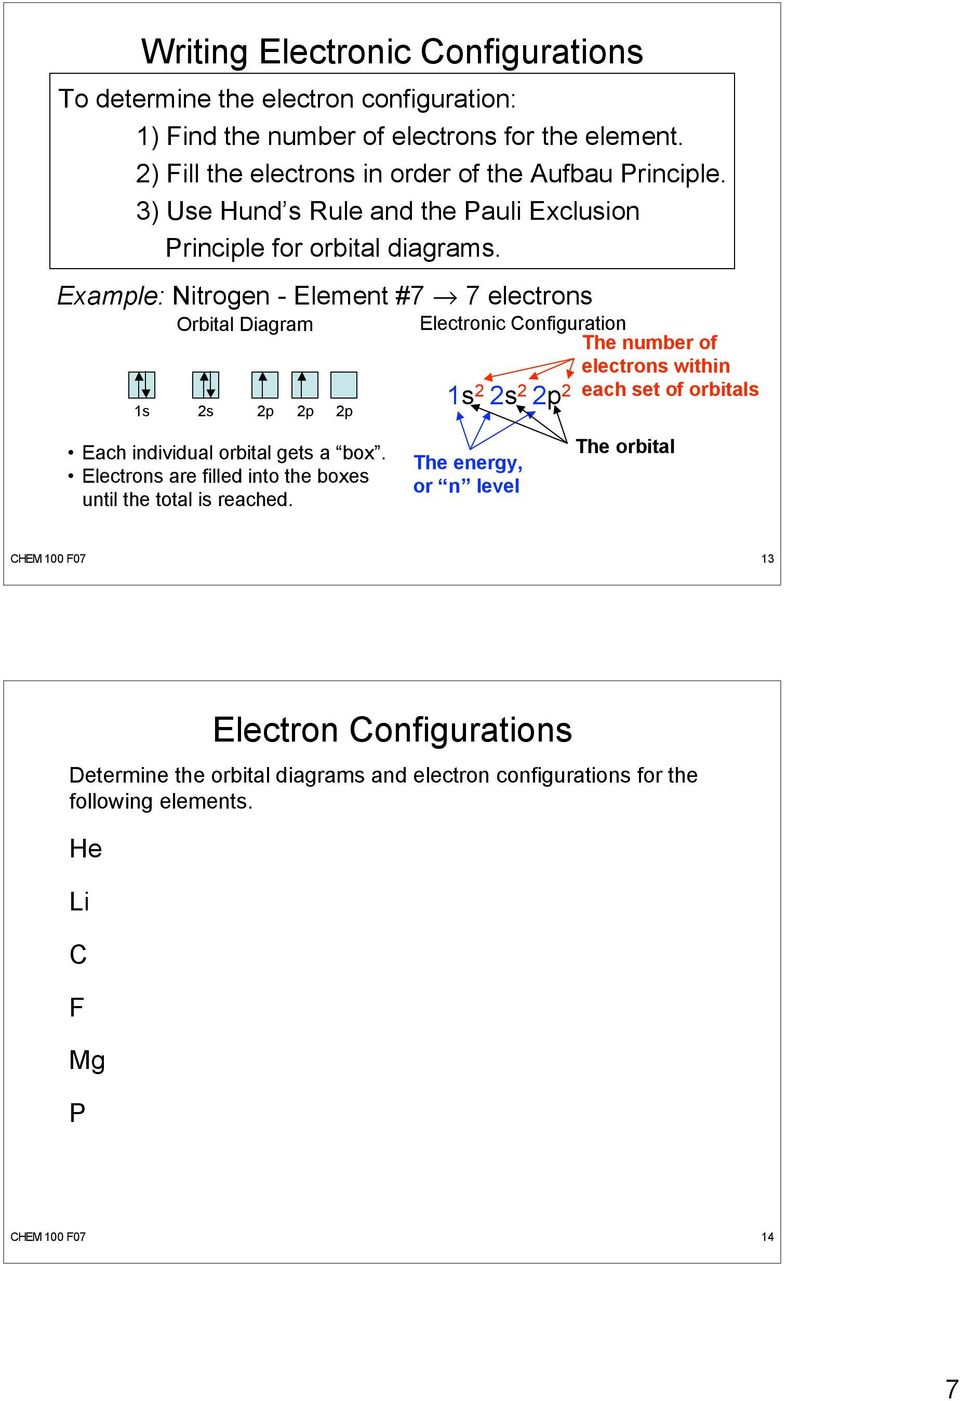 hight resolution of example nitrogen element 7 7 electrons orbital diagram 1s 2s 2p 2p 2p